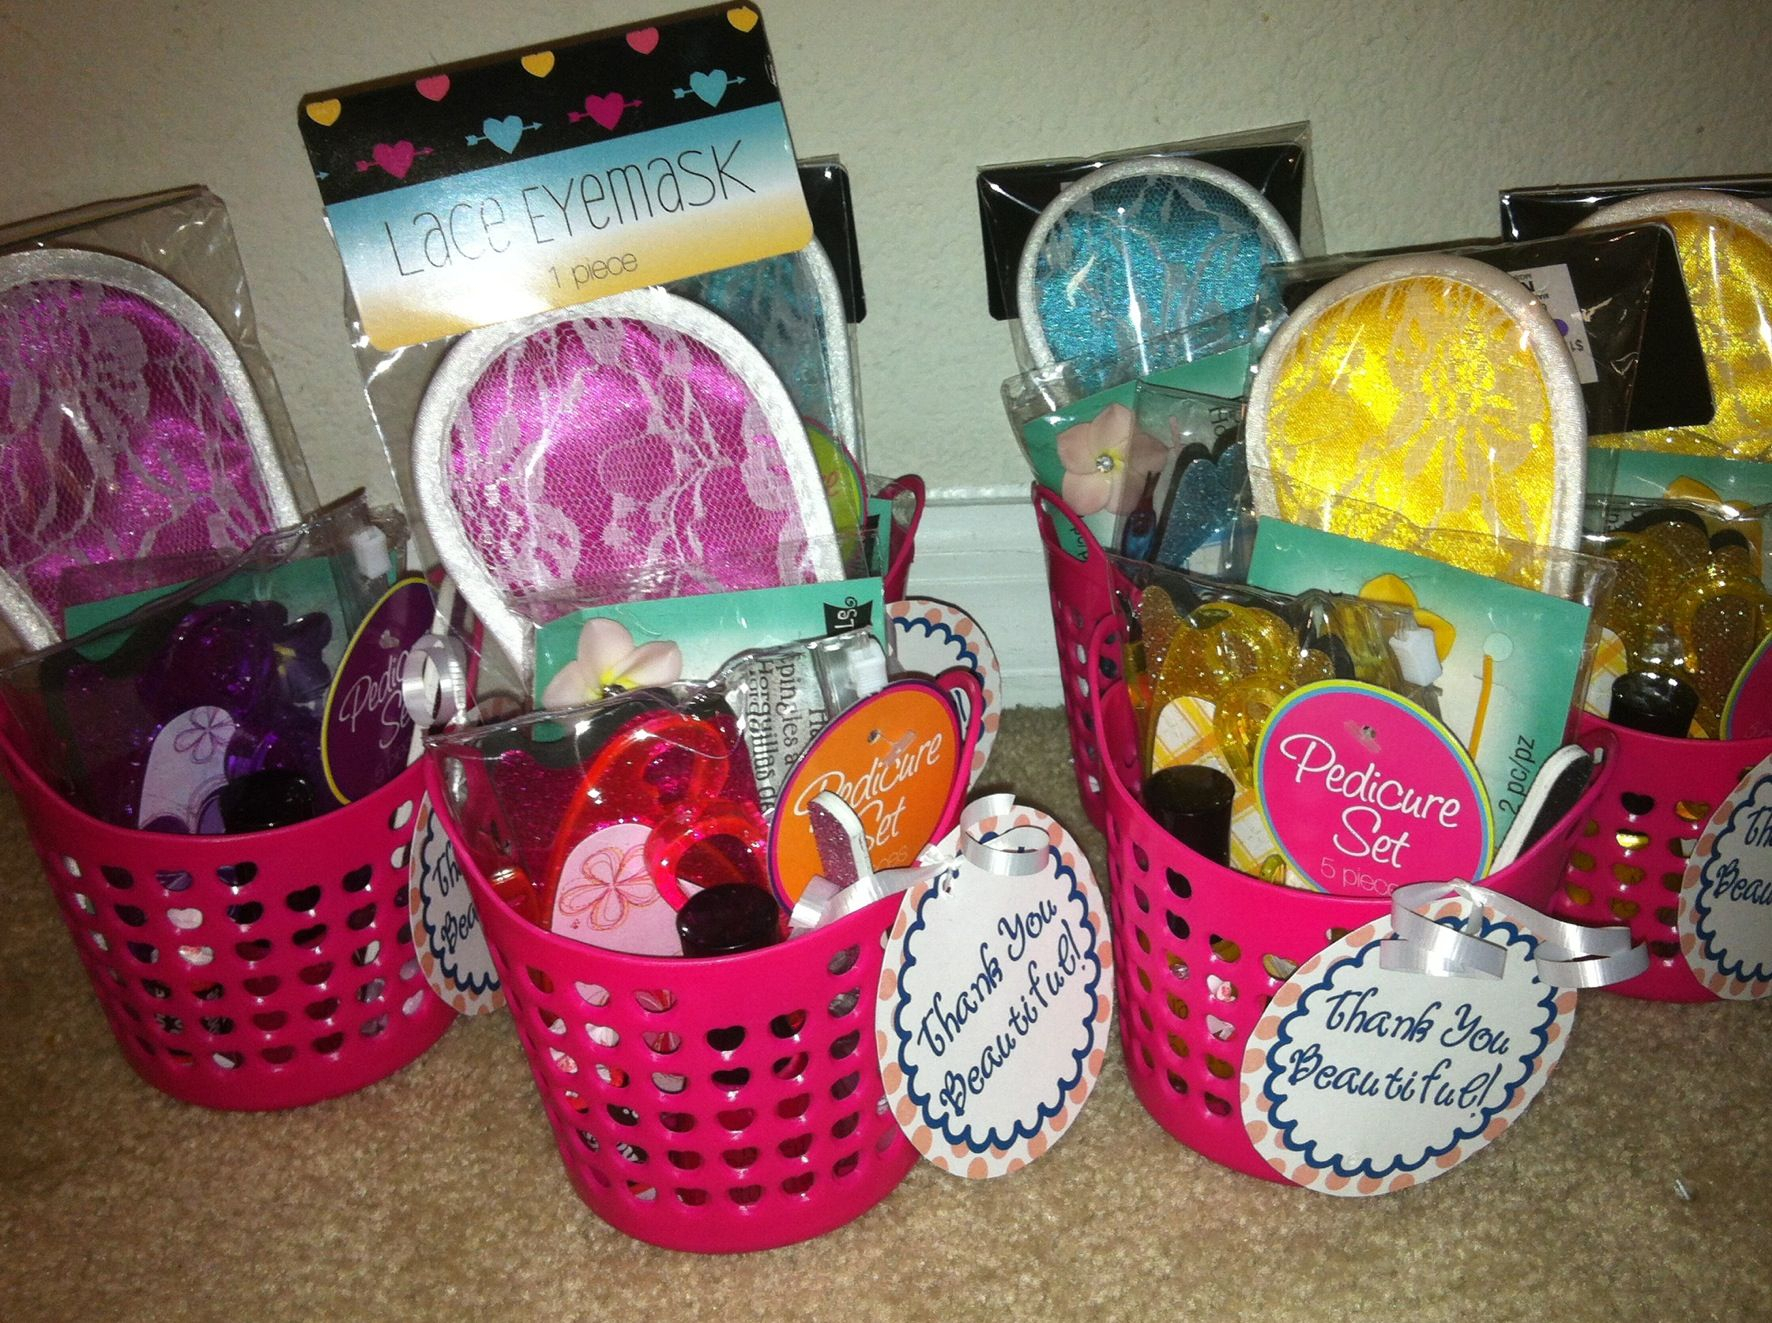 10 Lovely Goody Bag Ideas For Girls goodie bags for the girls genesis spa party preteen birthday 2020